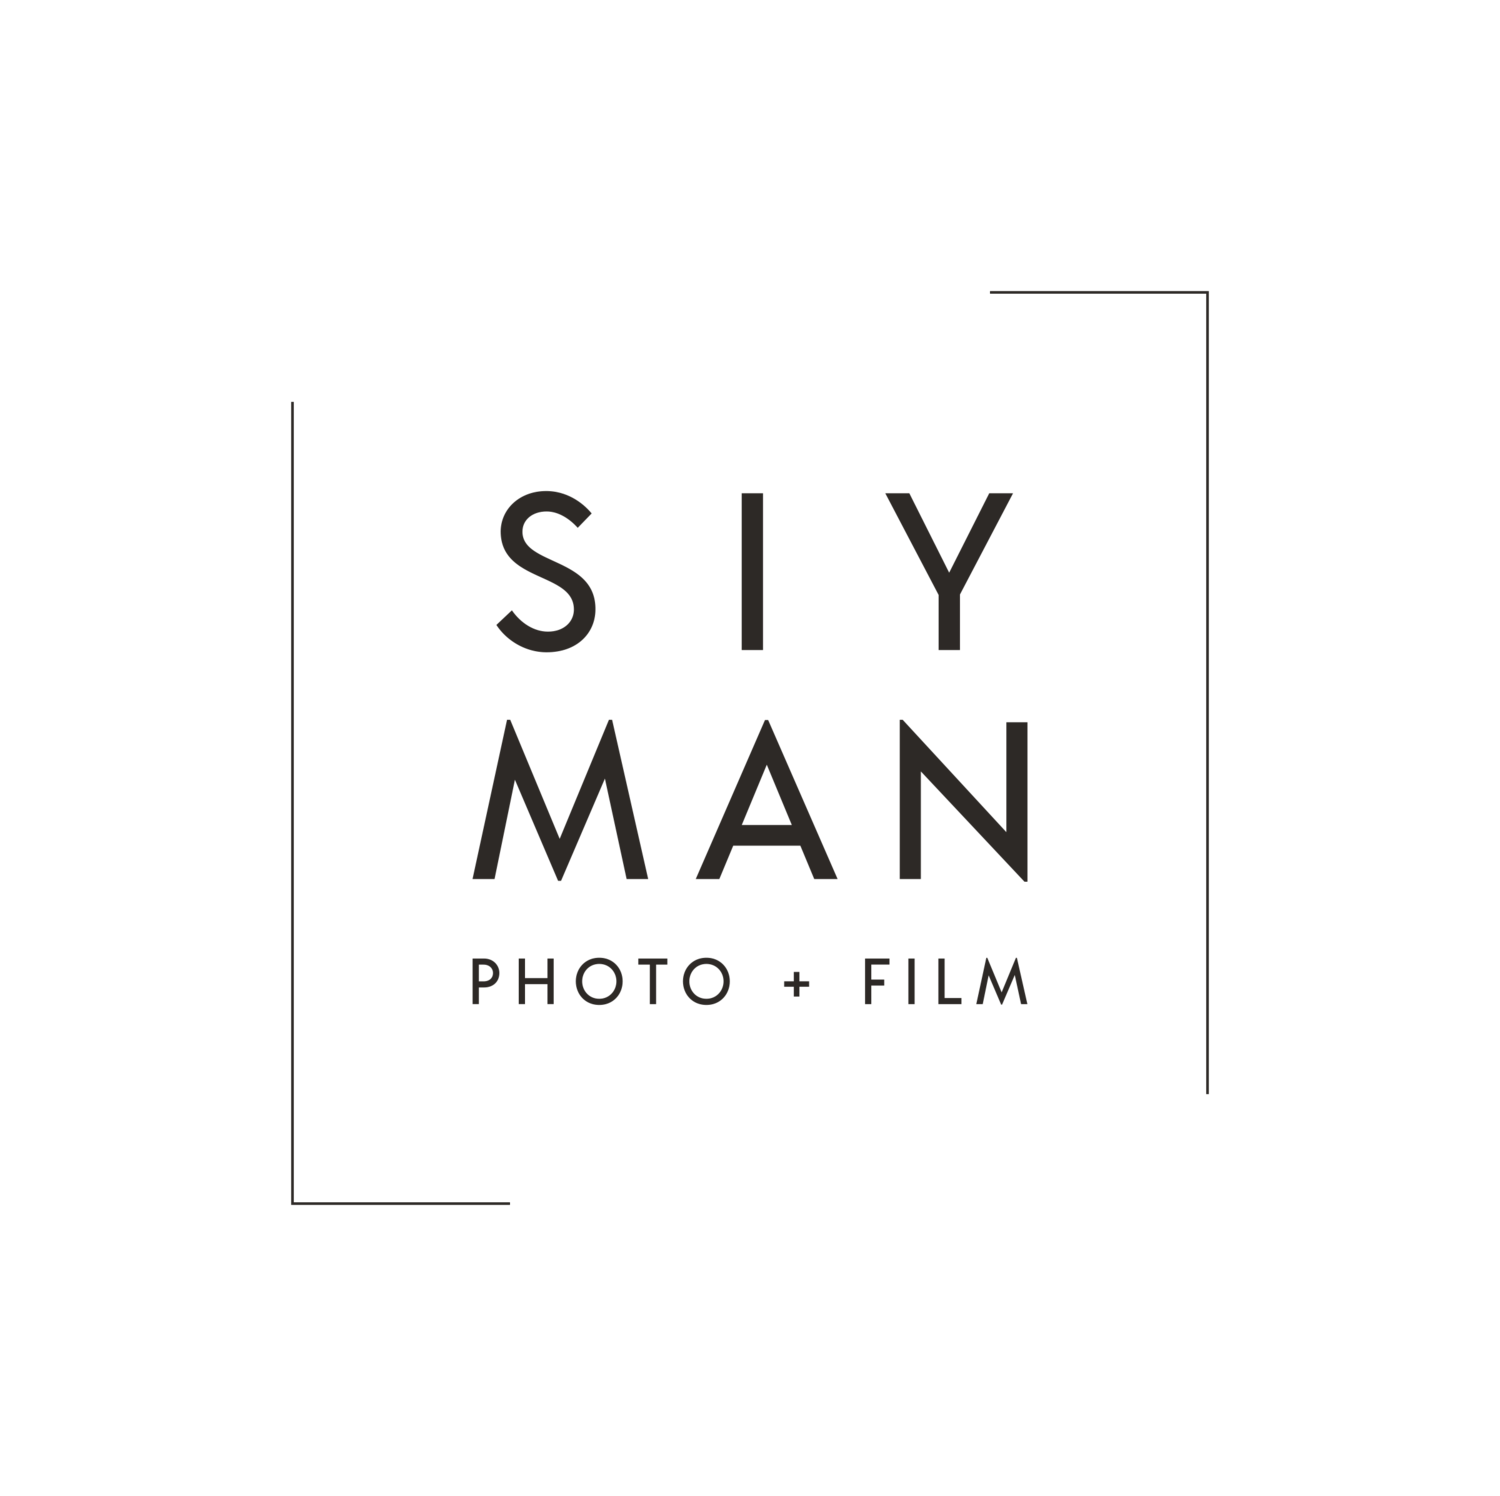 Siyman Photo & Film